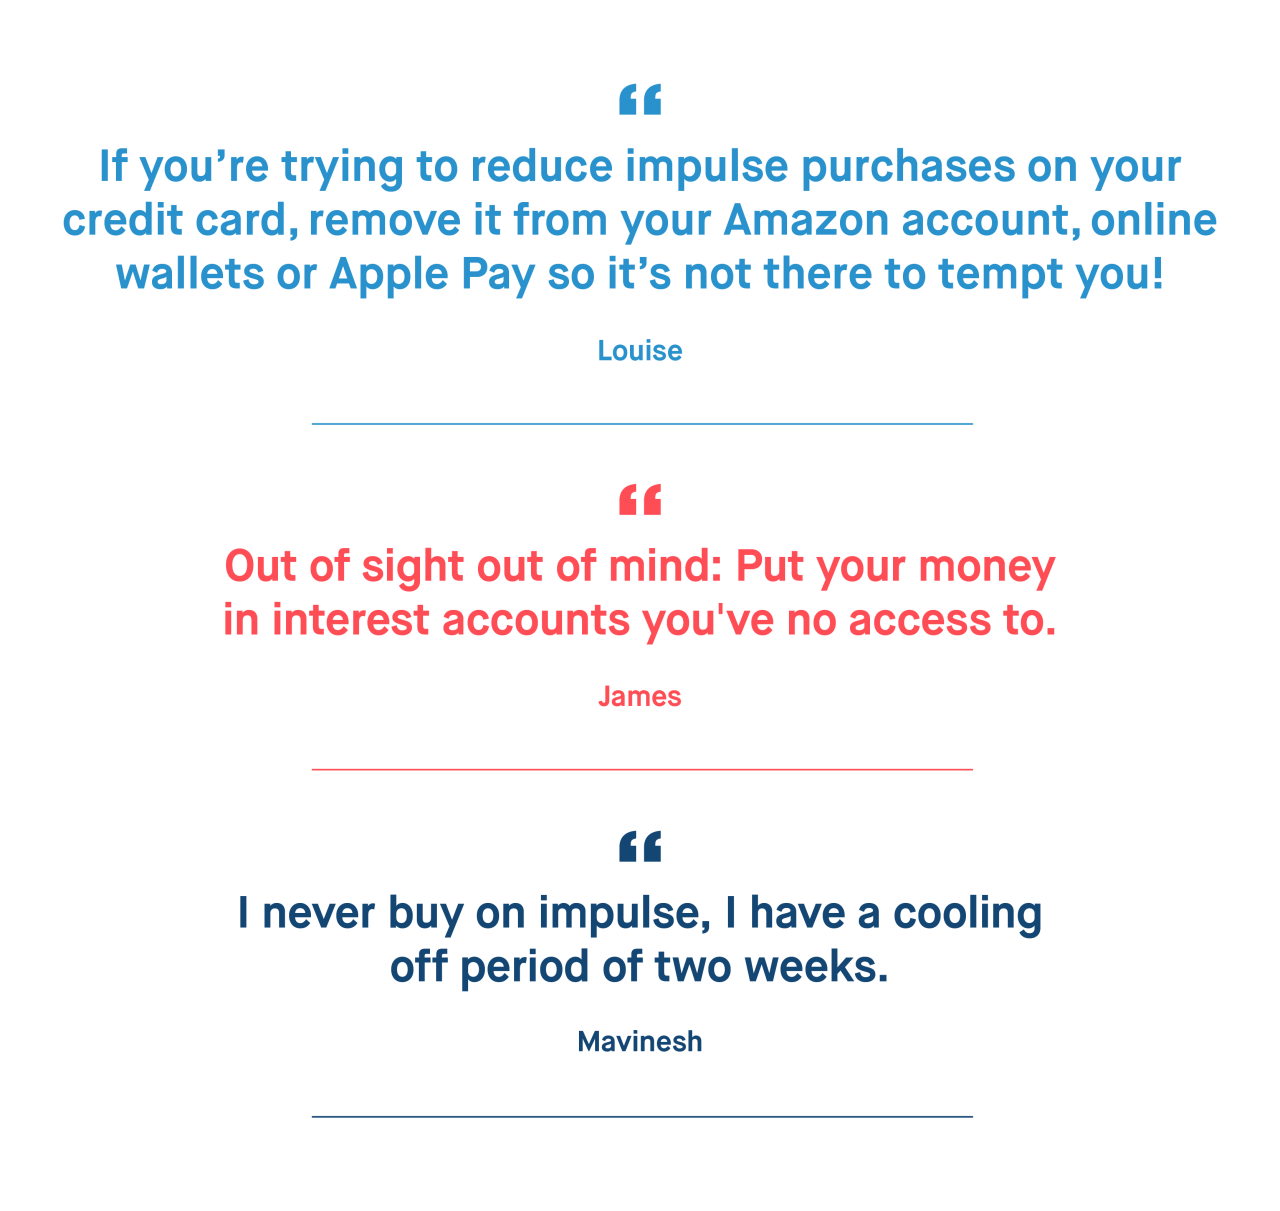 Louise – If you're trying to reduce impulse purchases on your credit card, remove it from your Amazon account, online wallets or Apple Pay so it's not there to tempt you!  James – Out of sight out of mind: Put your money in interest accounts you've no access to.   Mavinesh – I never buy on impulse, I have a cooling off period of two weeks.